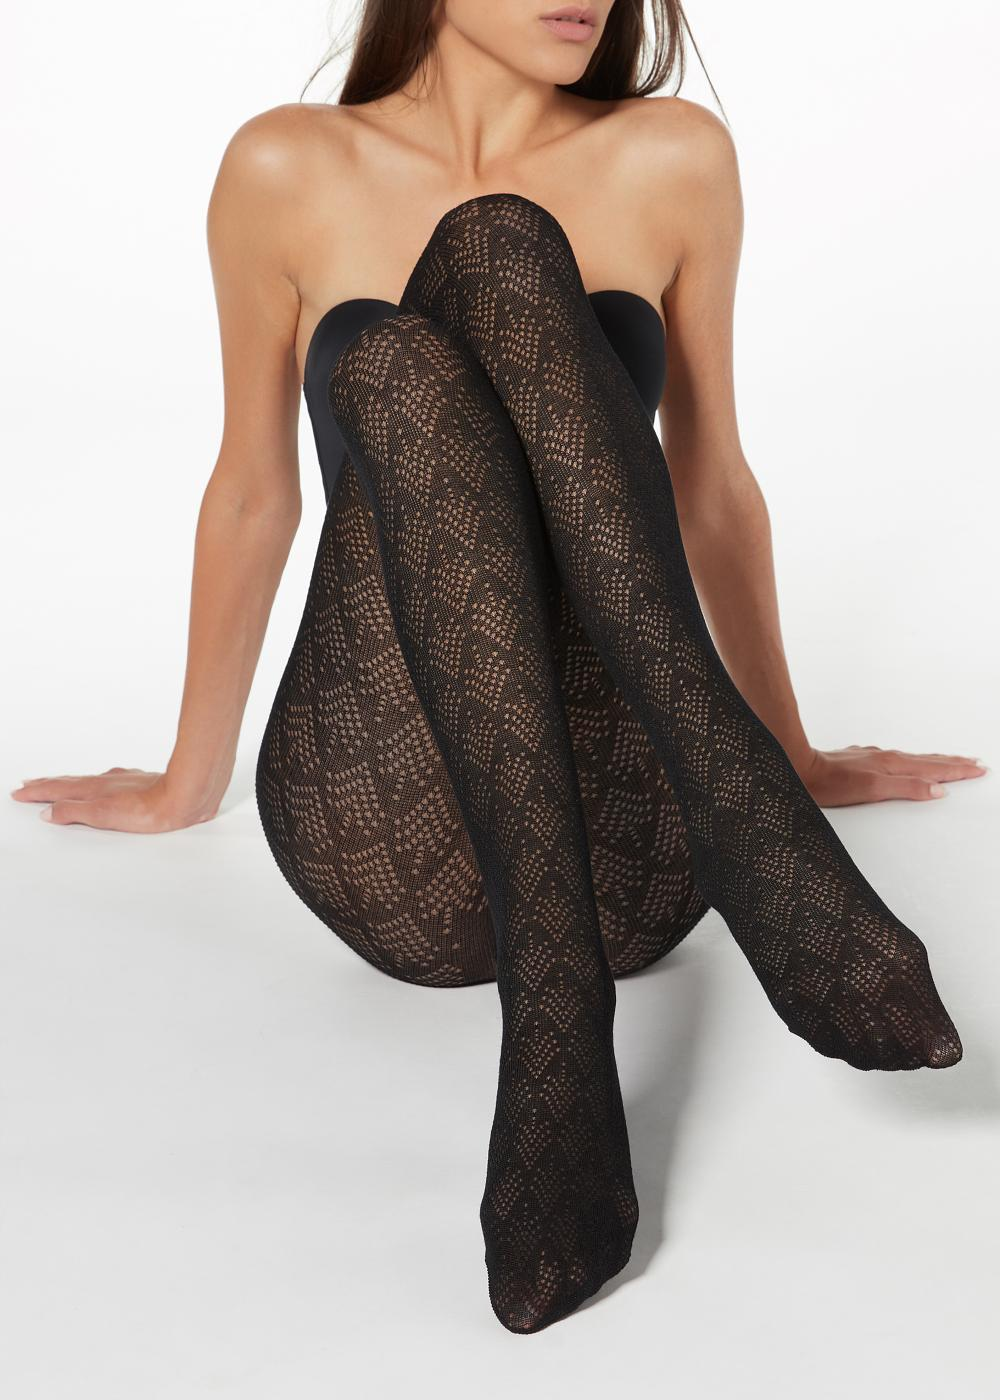 Collants Caxemira